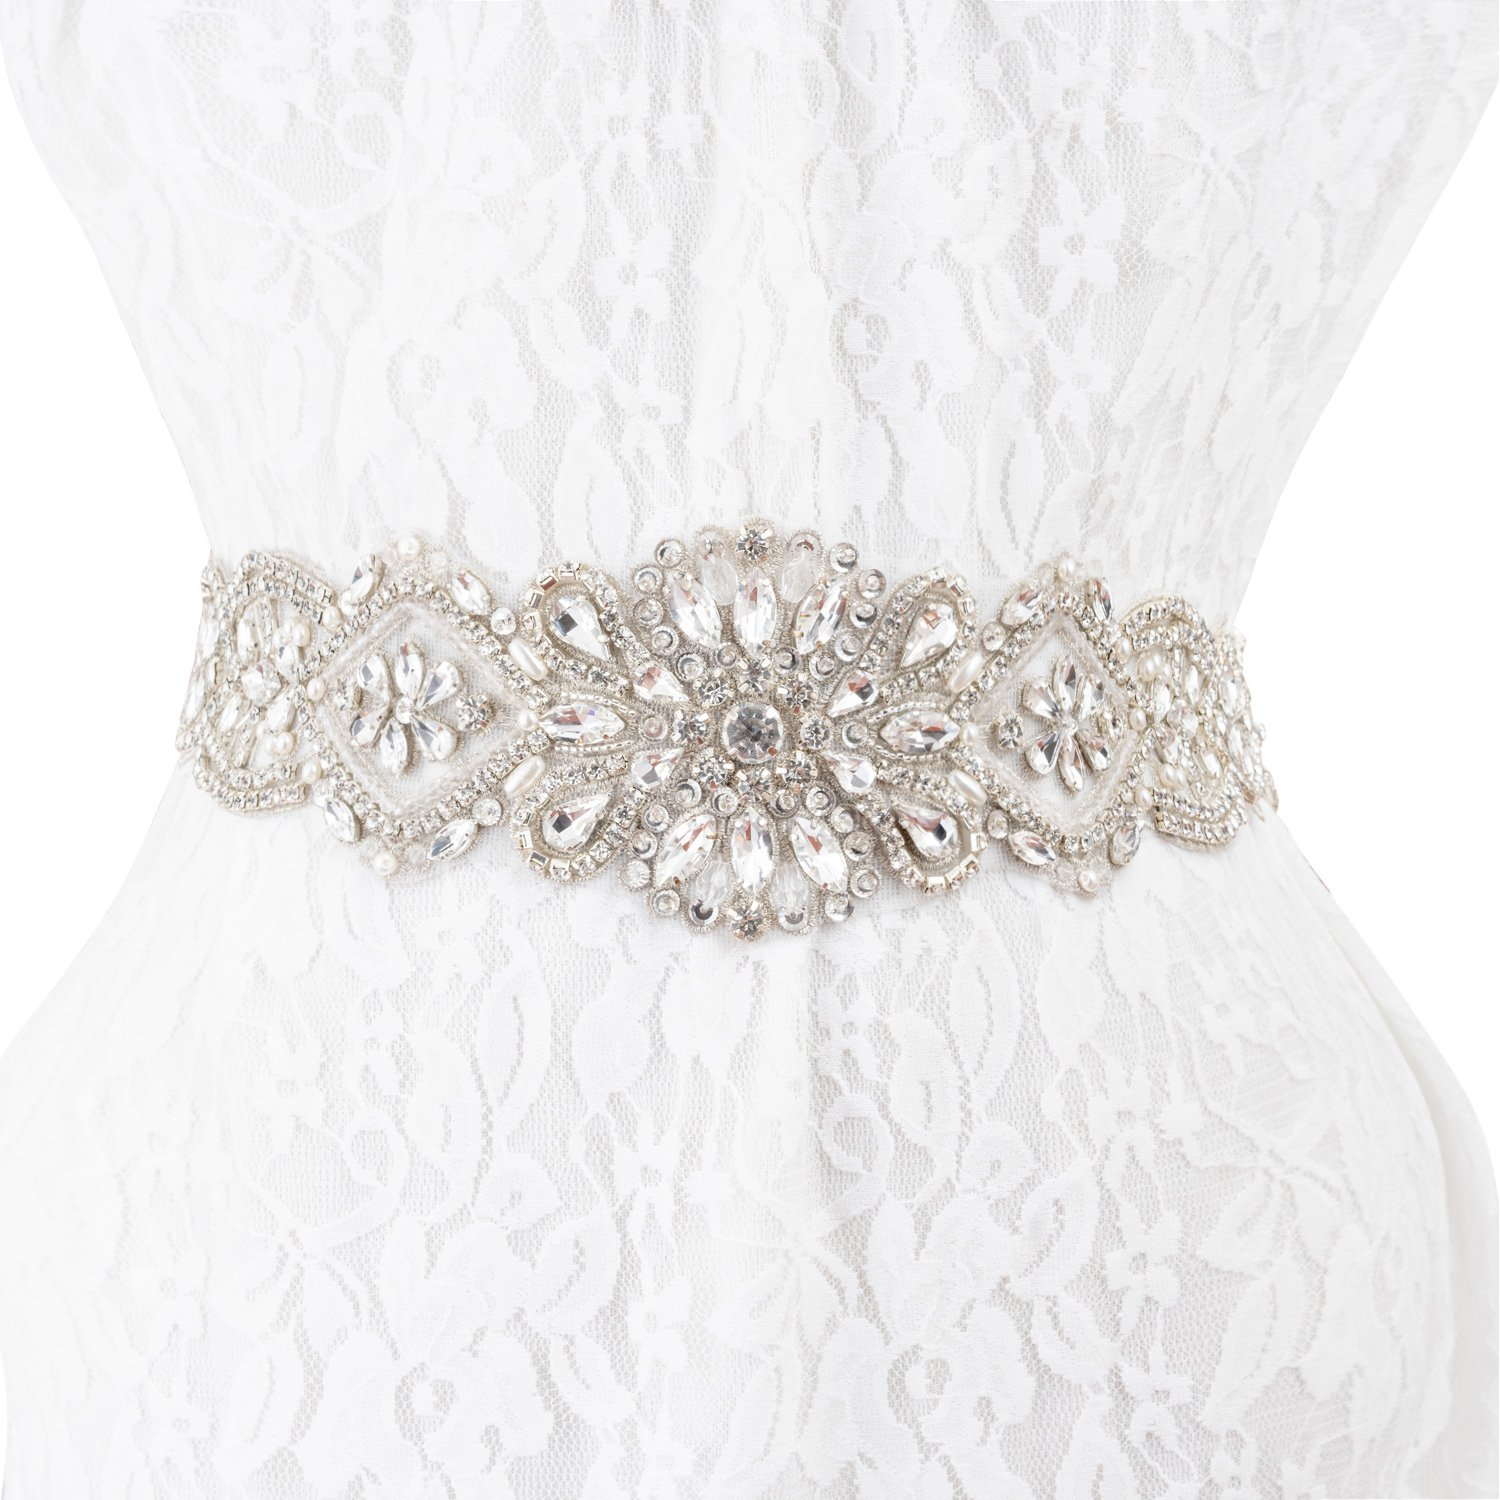 Bridal Wedding Dress Applique Belts, Wedding Bridal Sash Applique Crystal Belt